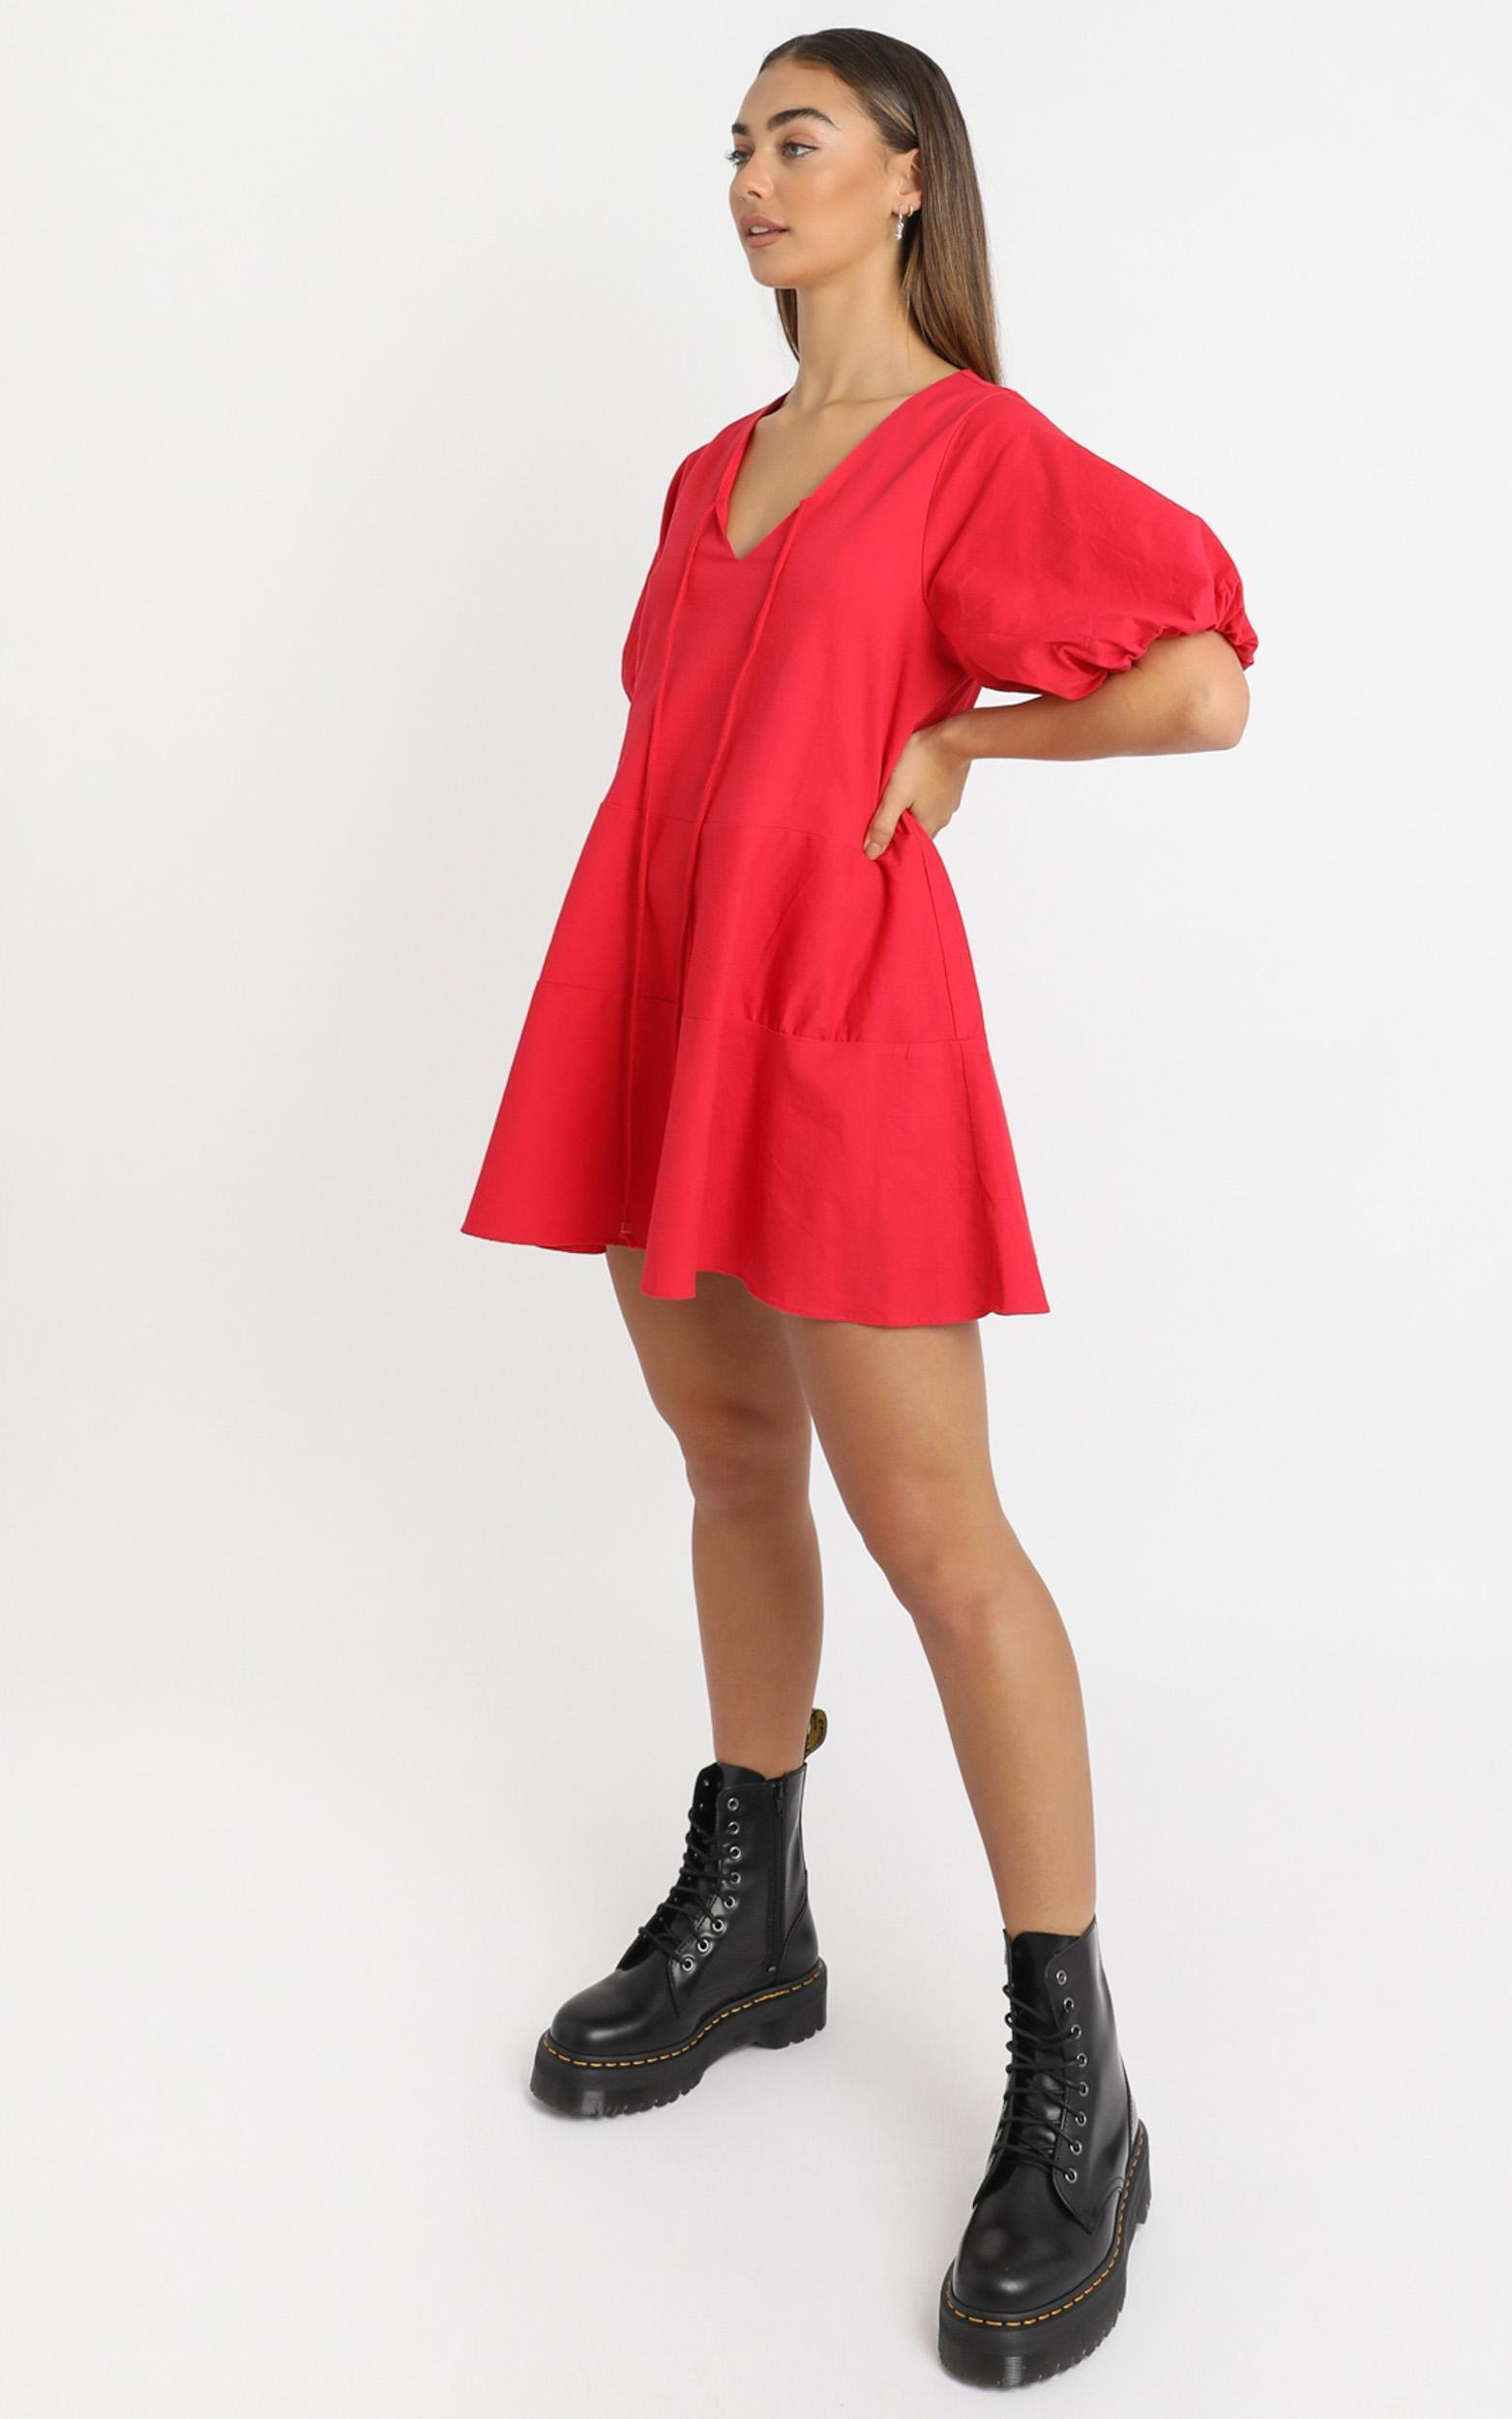 Krizza Mini Dress in red linen look - 6 (XS), Red, hi-res image number null